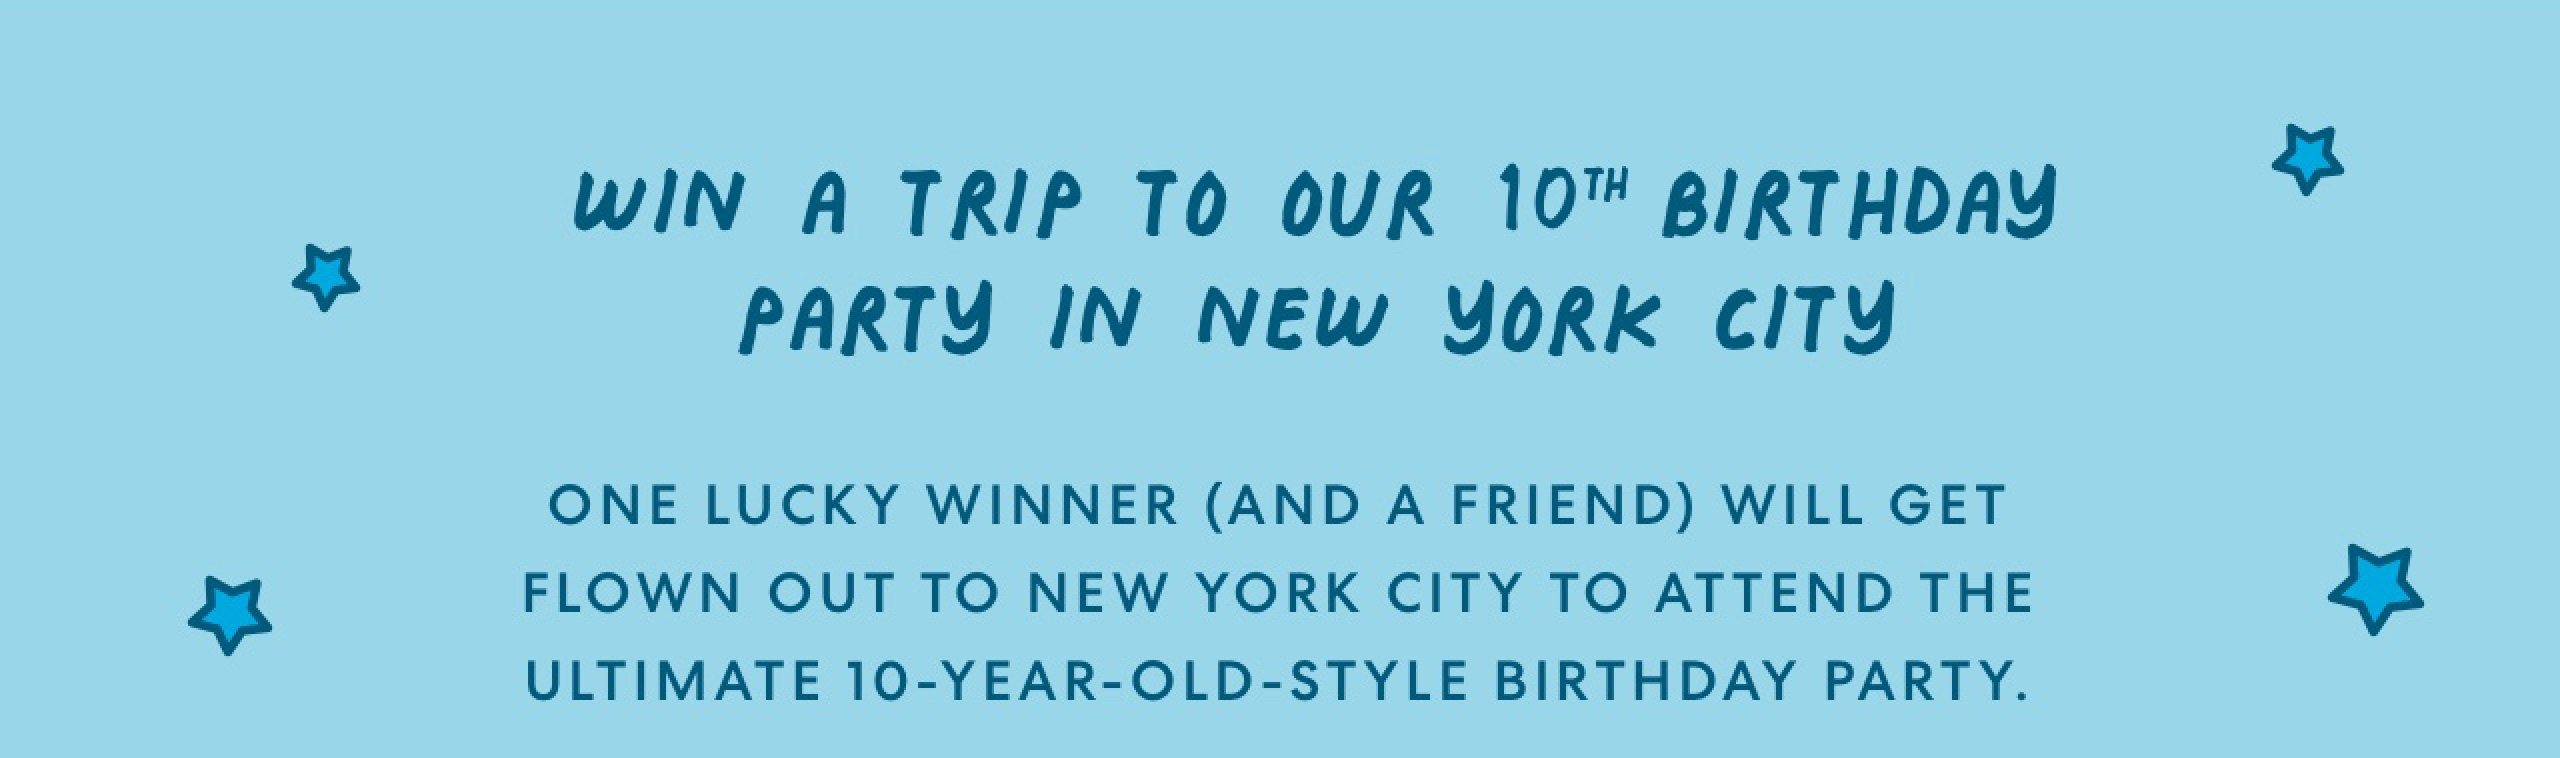 Win a trip to our 10th birthday party